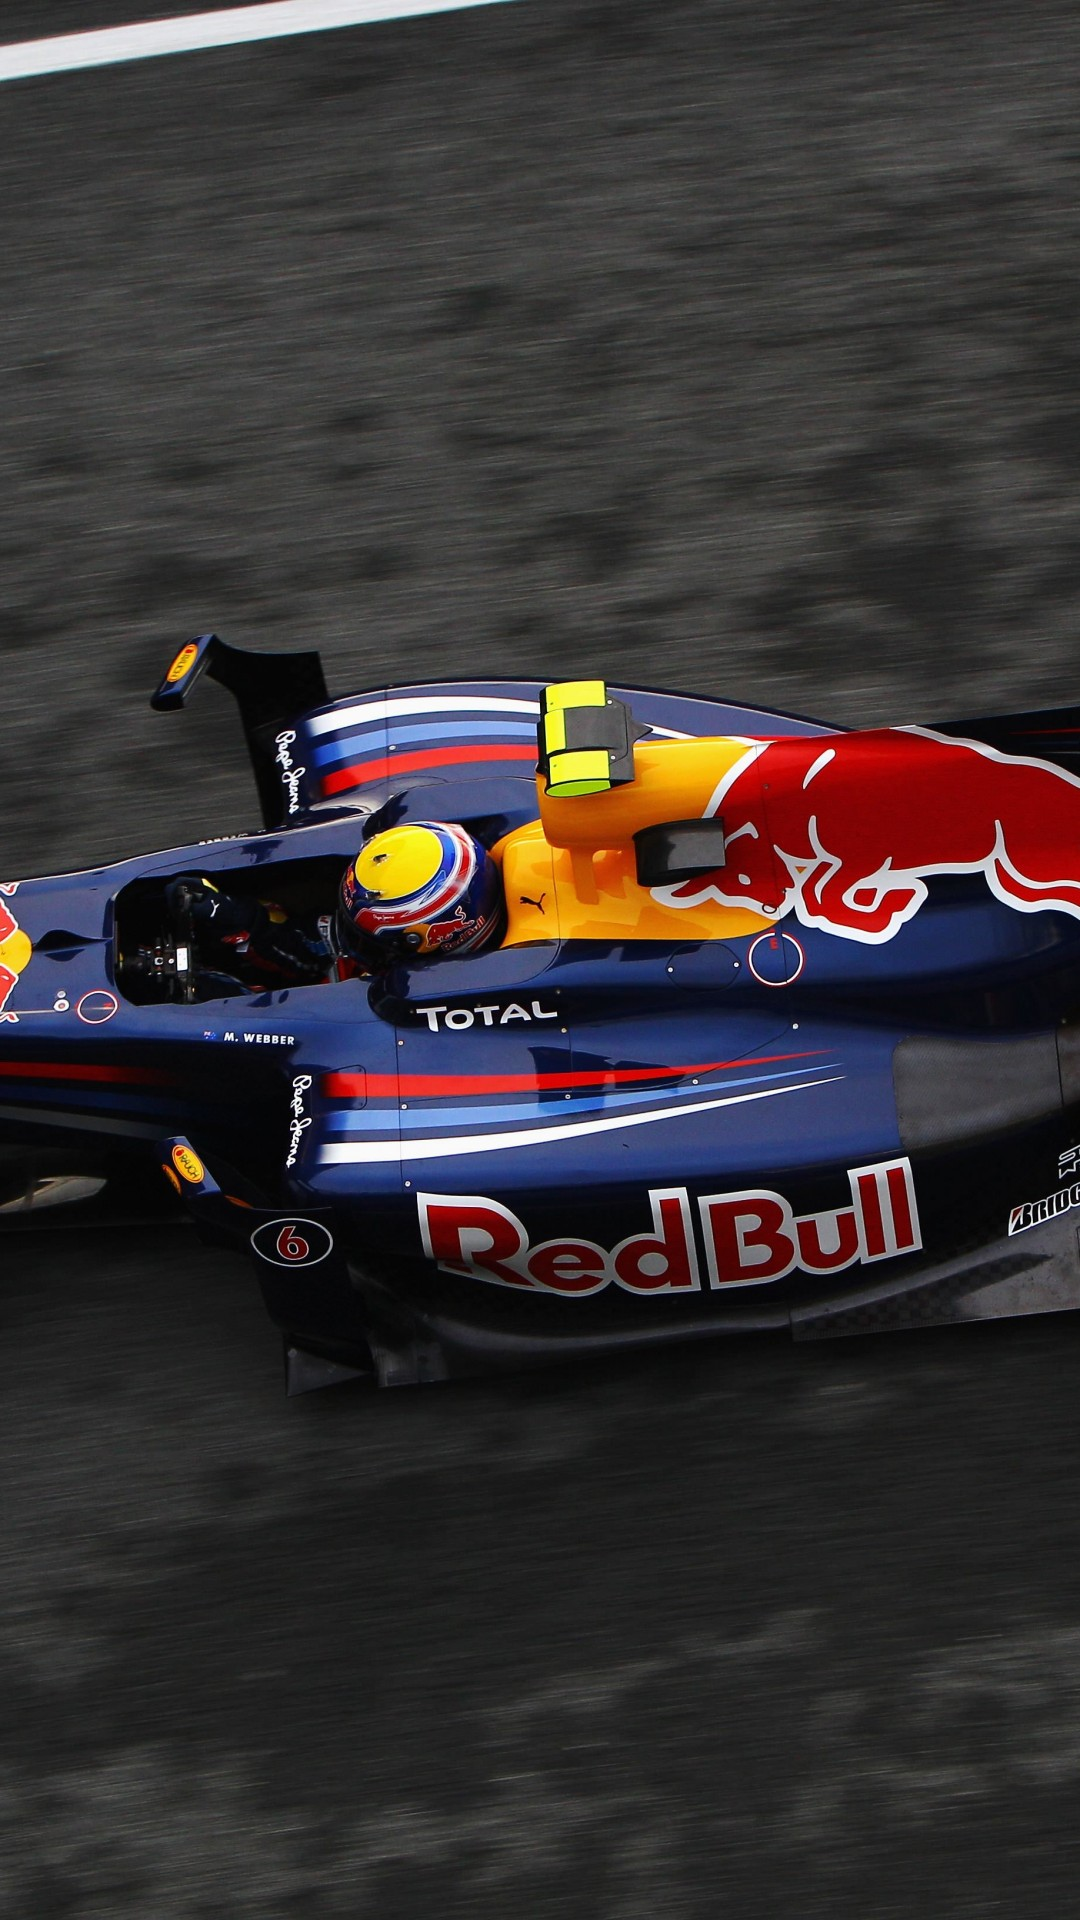 F1 Red Bull Team Wallpaper for SAMSUNG Galaxy S5